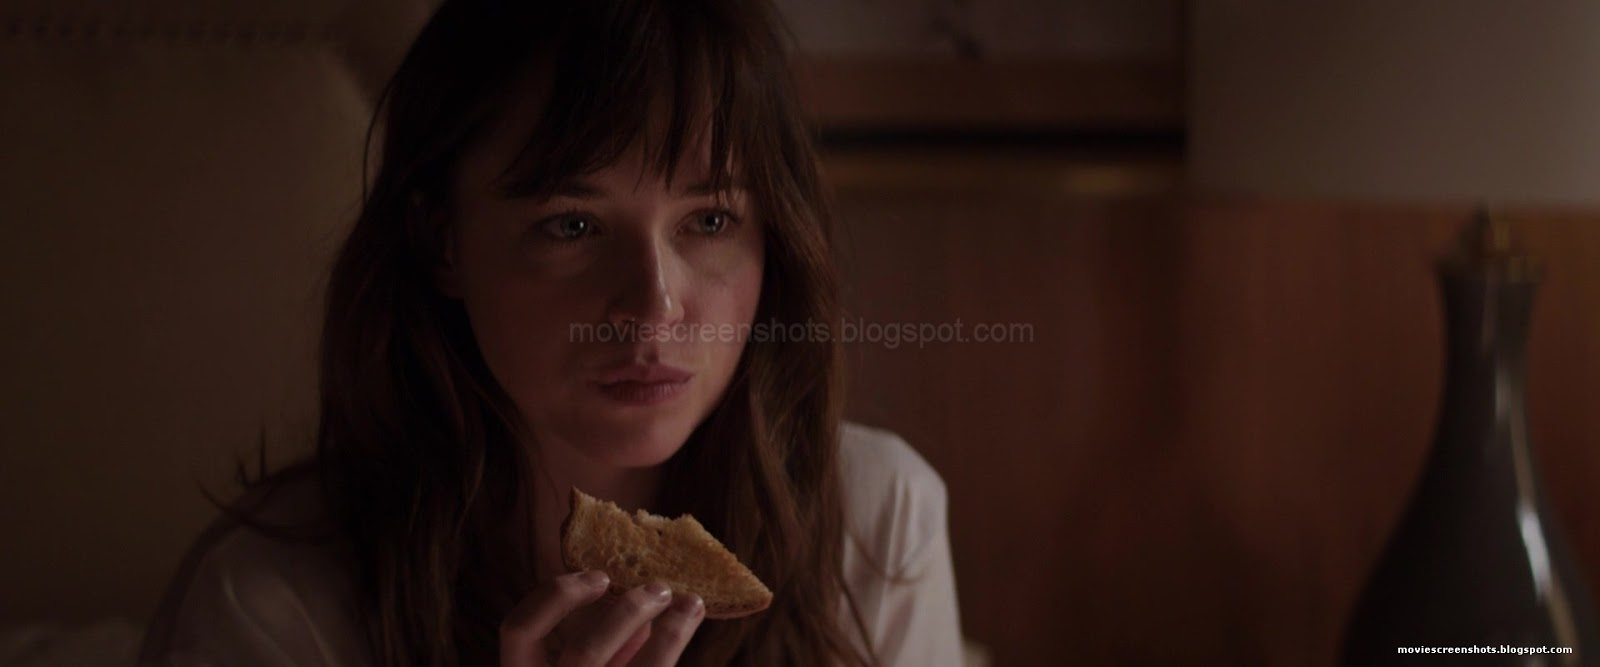 Vagebond 39 s movie screenshots fifty shades of grey 2015 for The fifty shades of grey